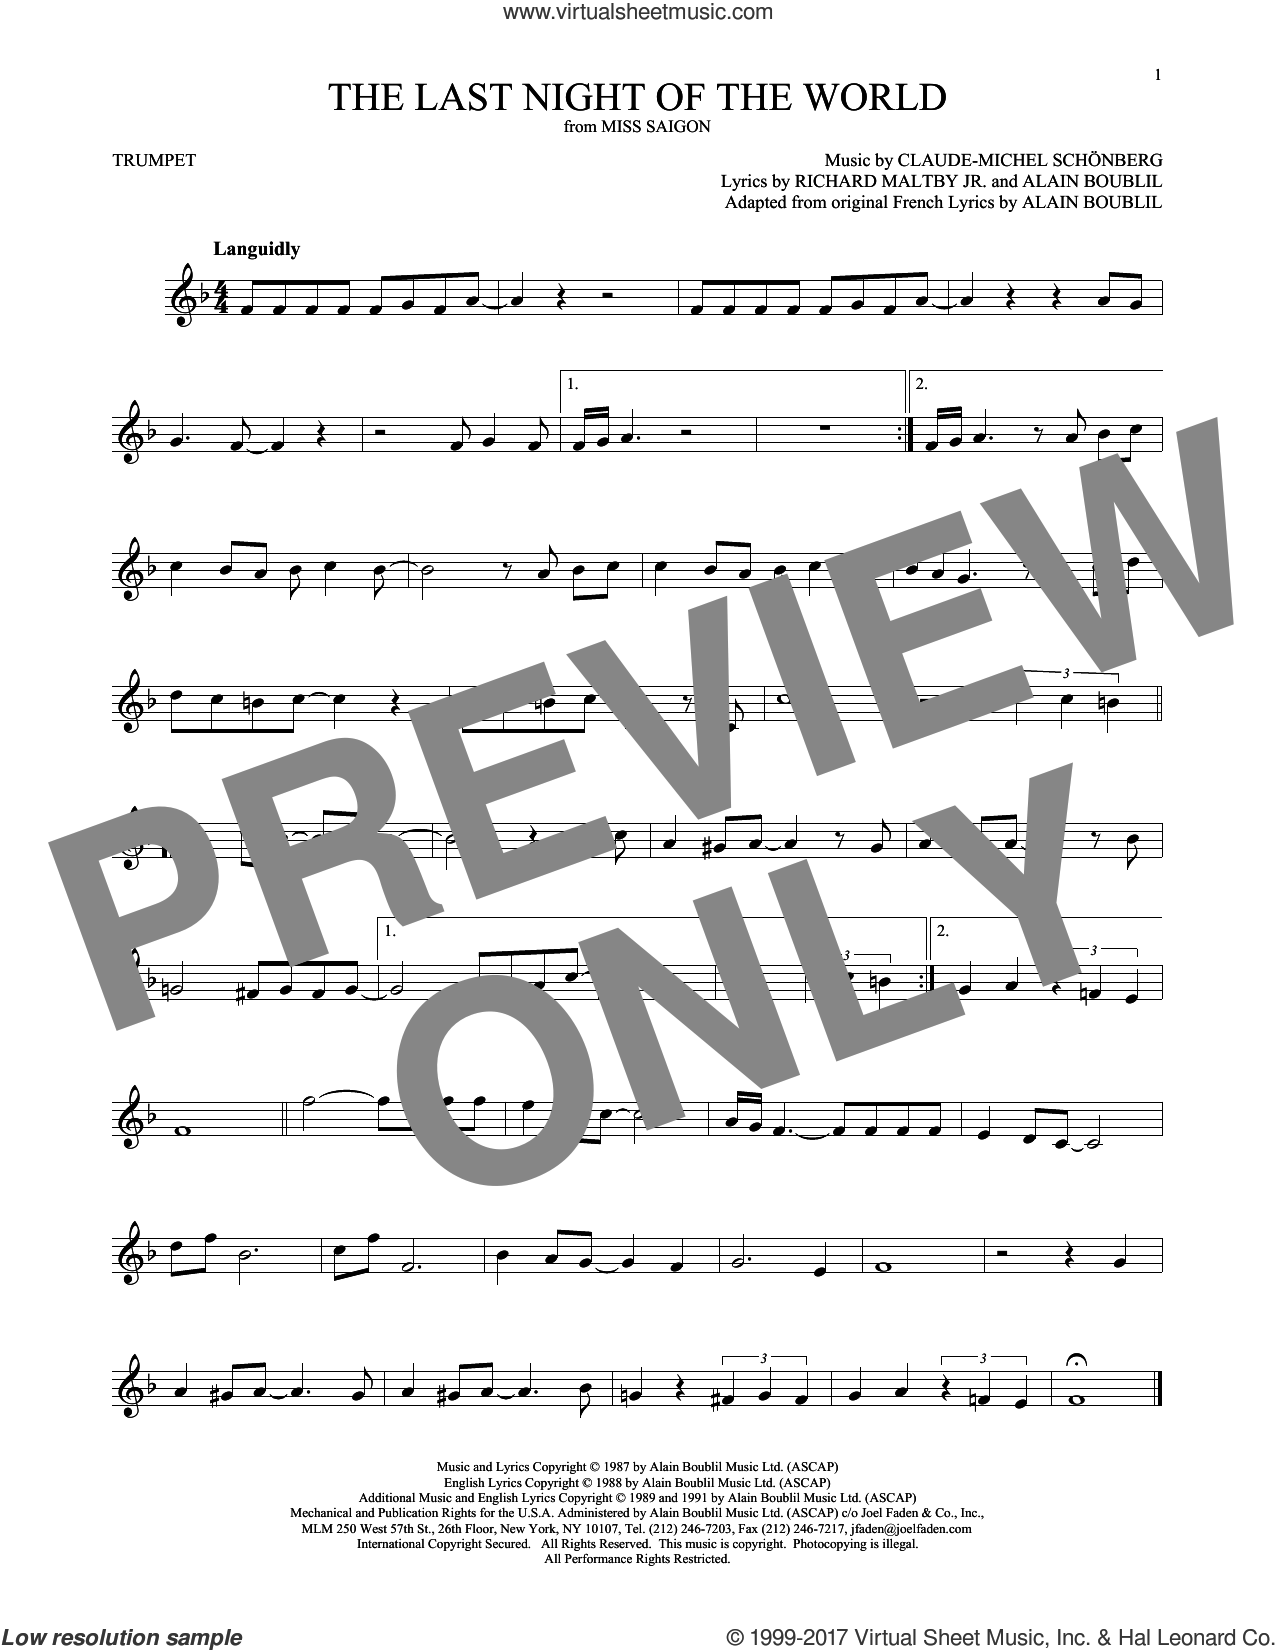 The Last Night Of The World sheet music for trumpet solo by Alain Boublil and Claude-Michel Schonberg, intermediate skill level